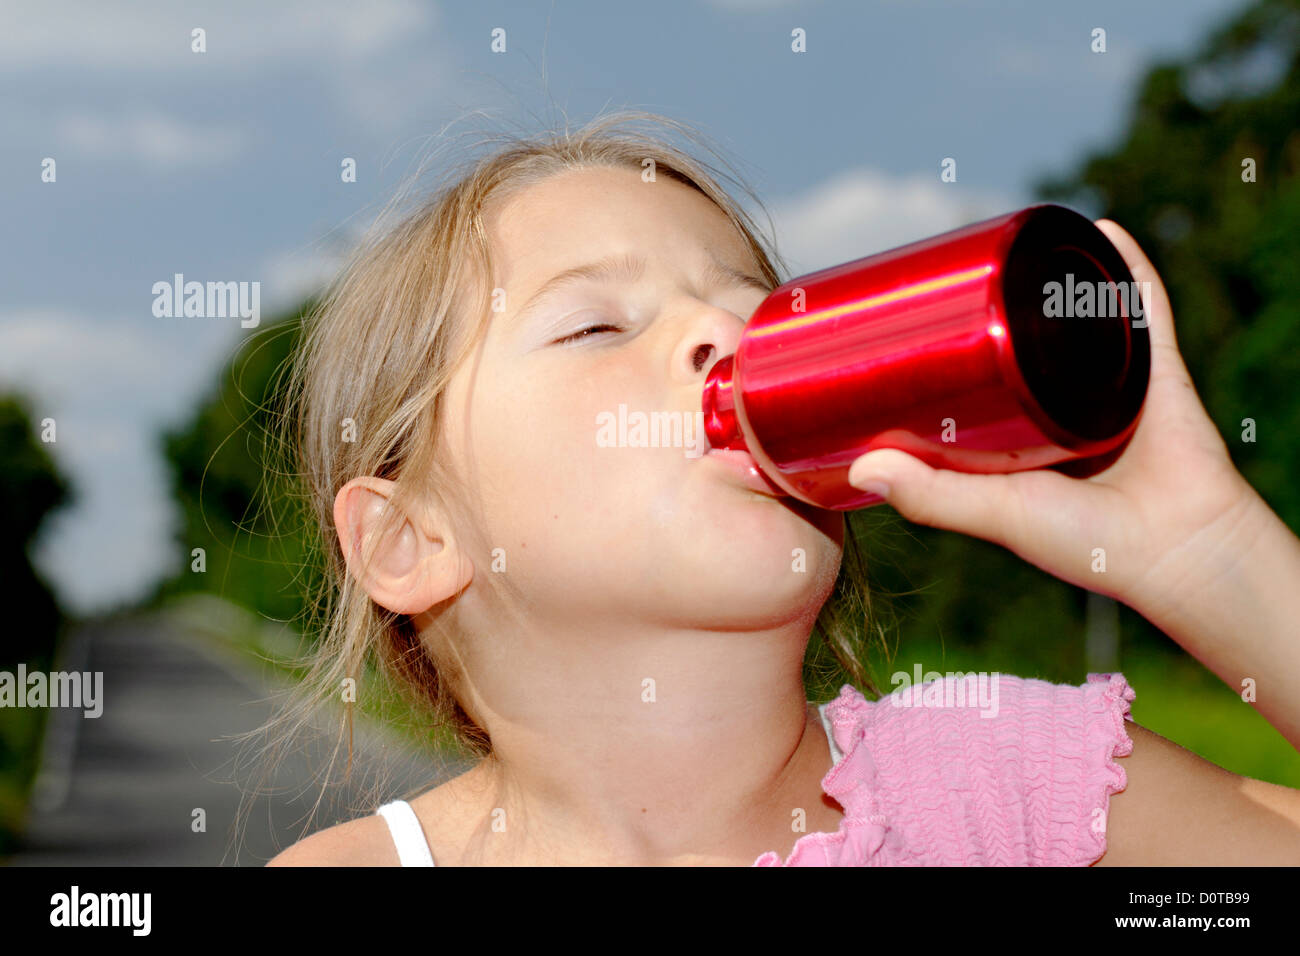 Girls, child, 6, school age, age, water, drink, drinks, outdoors, outside, spare time, sweat, water bottle, dehydrogenate, - Stock Image